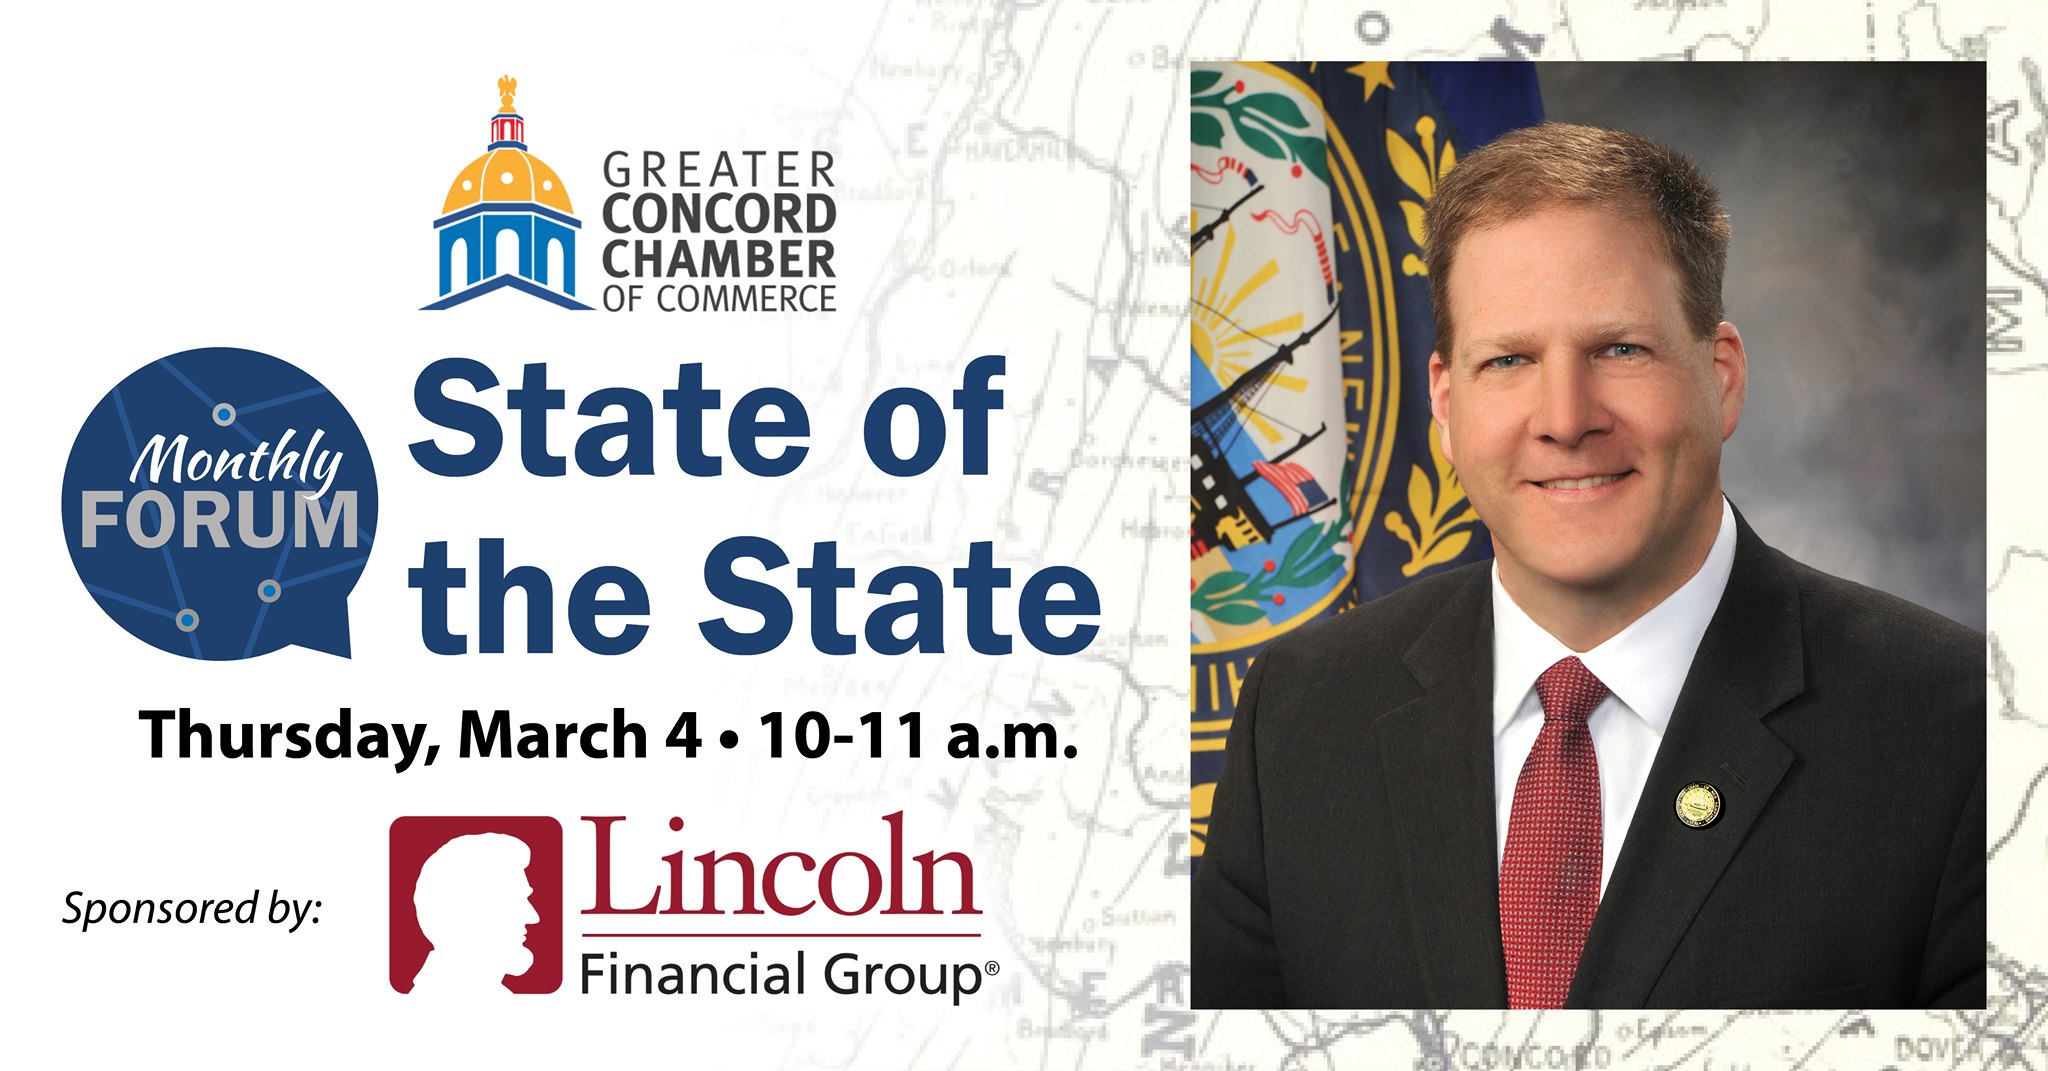 State of the State forum 2021